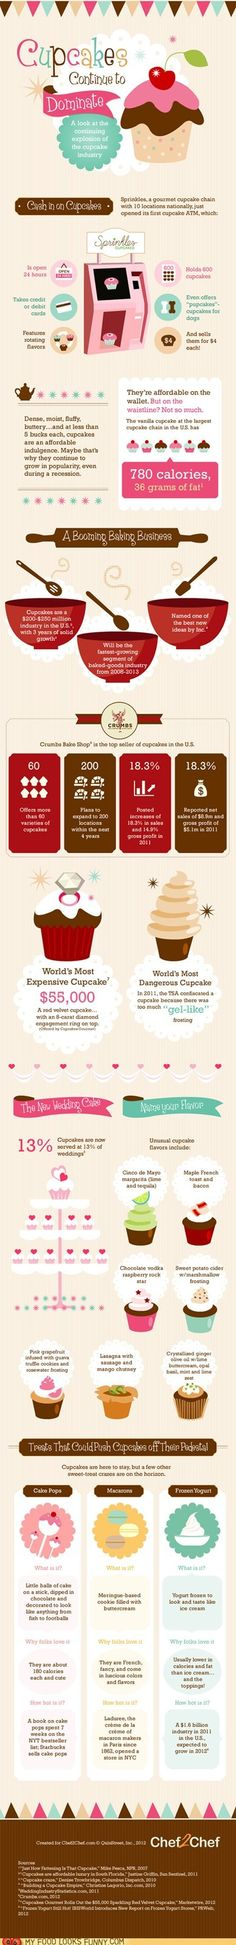 cupcake #infographic